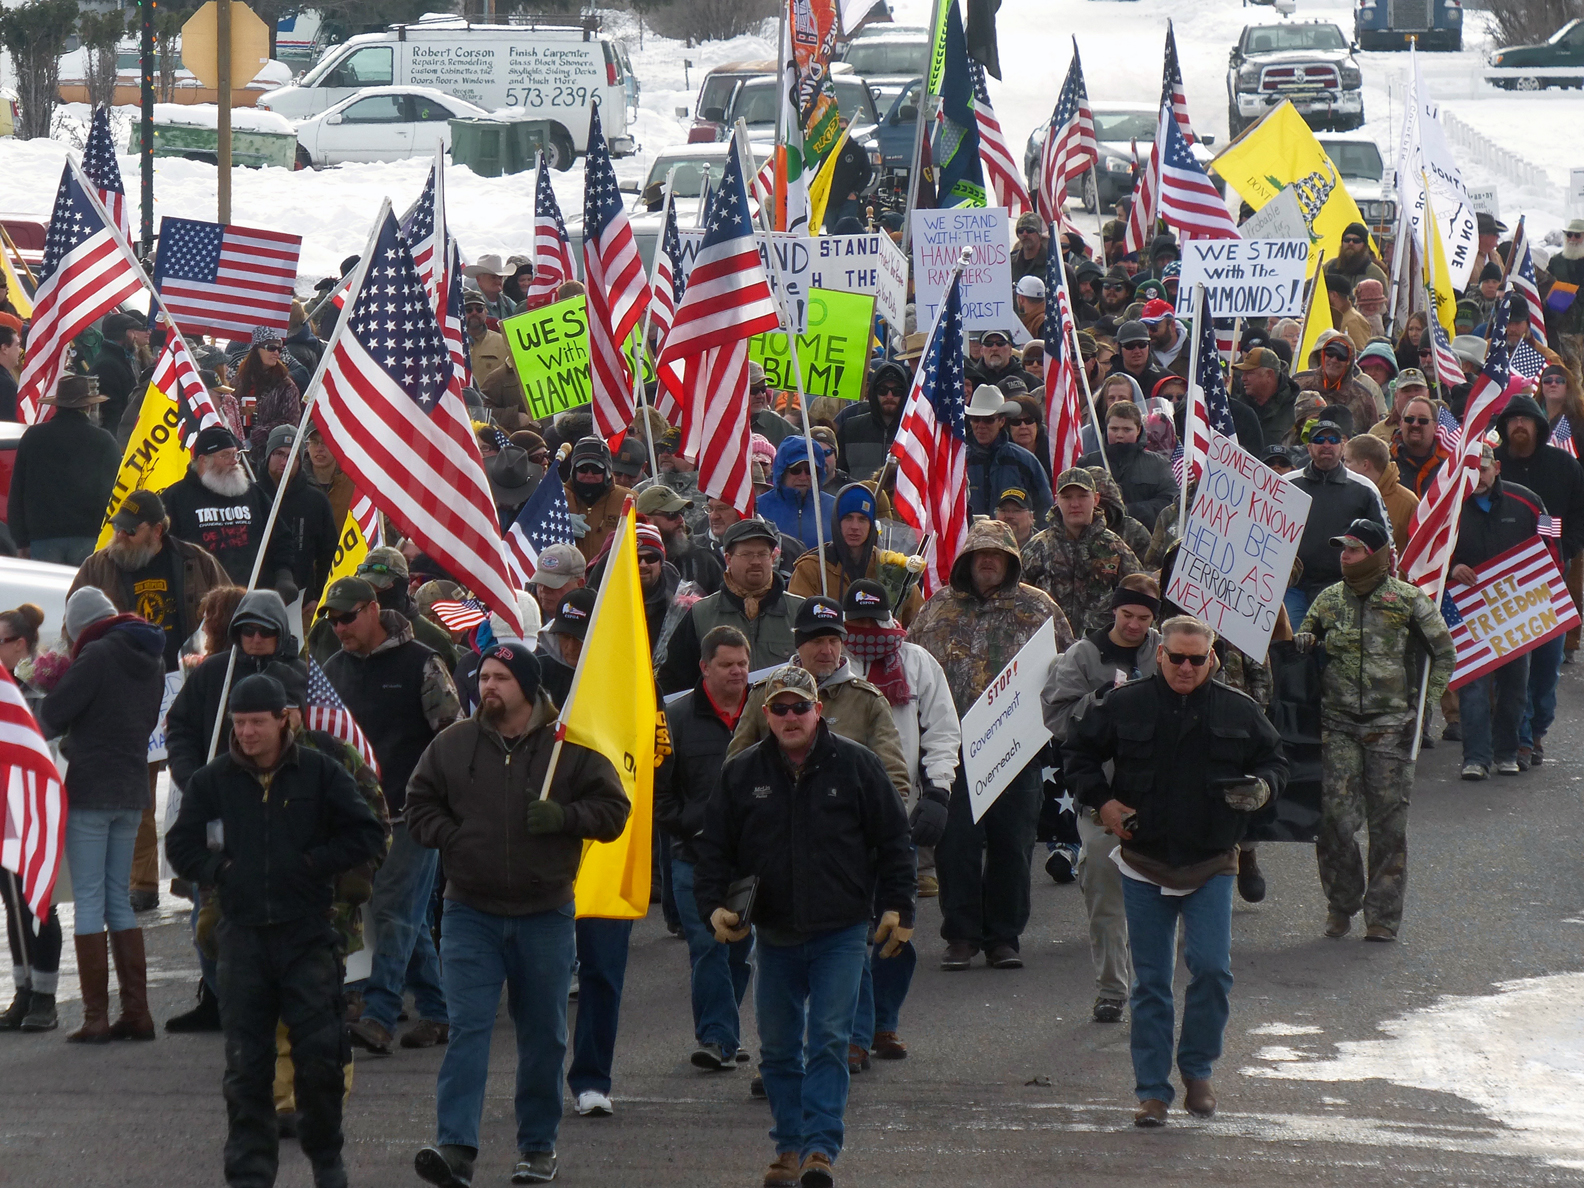 Protesters march on Court Avenue in support of an Oregon ranching family facing jail time for arson in Burns, Ore., Saturday, Jan. 2, 2016.